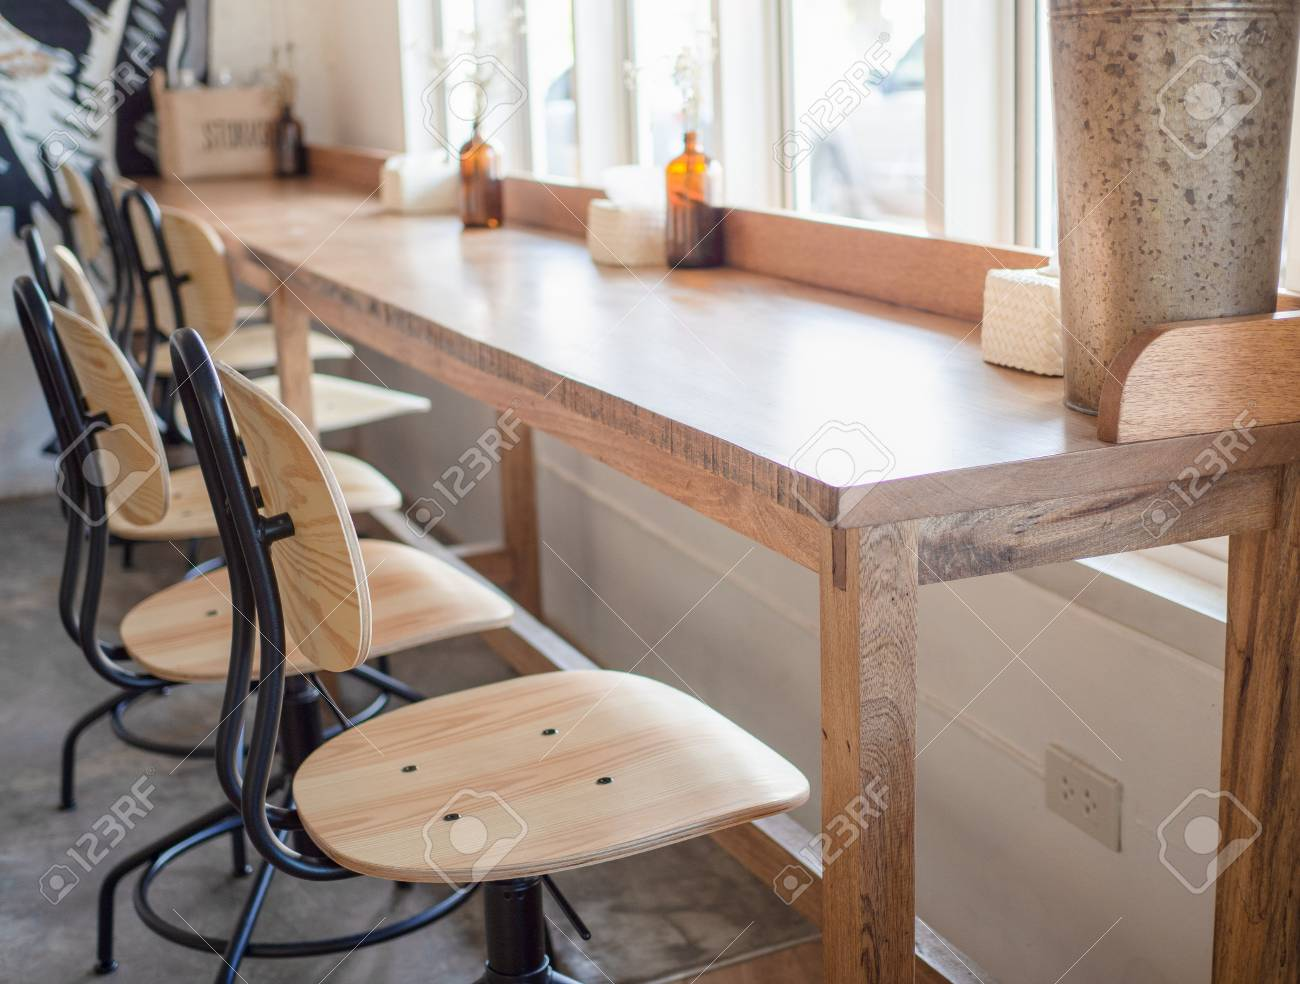 Modern Wooden Chais And Wooden Bar Table In White Butique Cafe Stock Photo Picture And Royalty Free Image Image 101864903